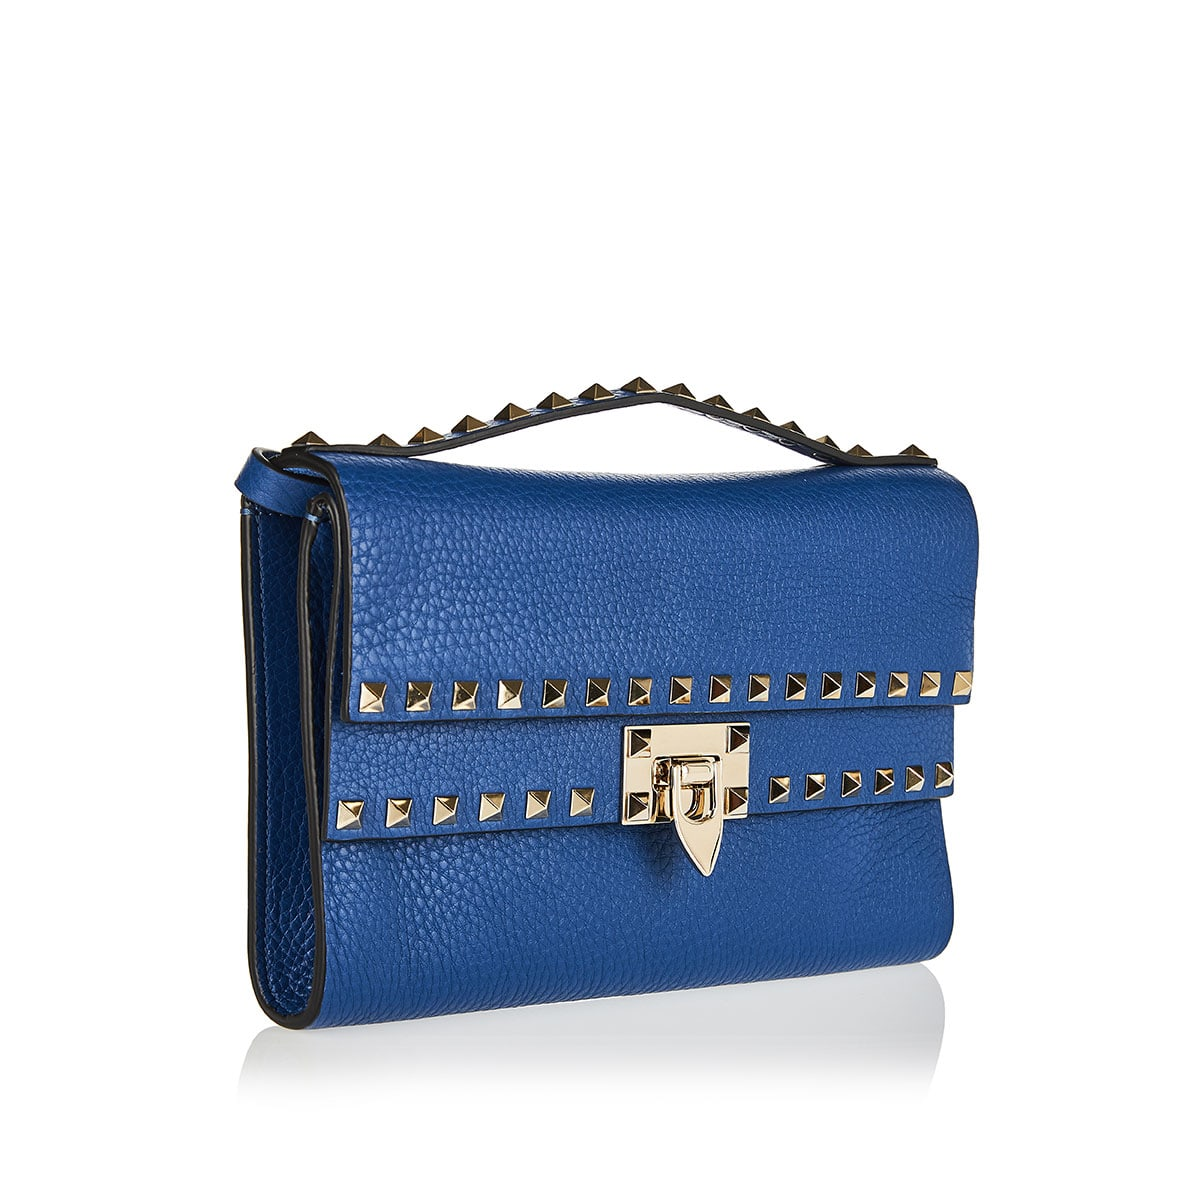 Rockstud Small leather bag